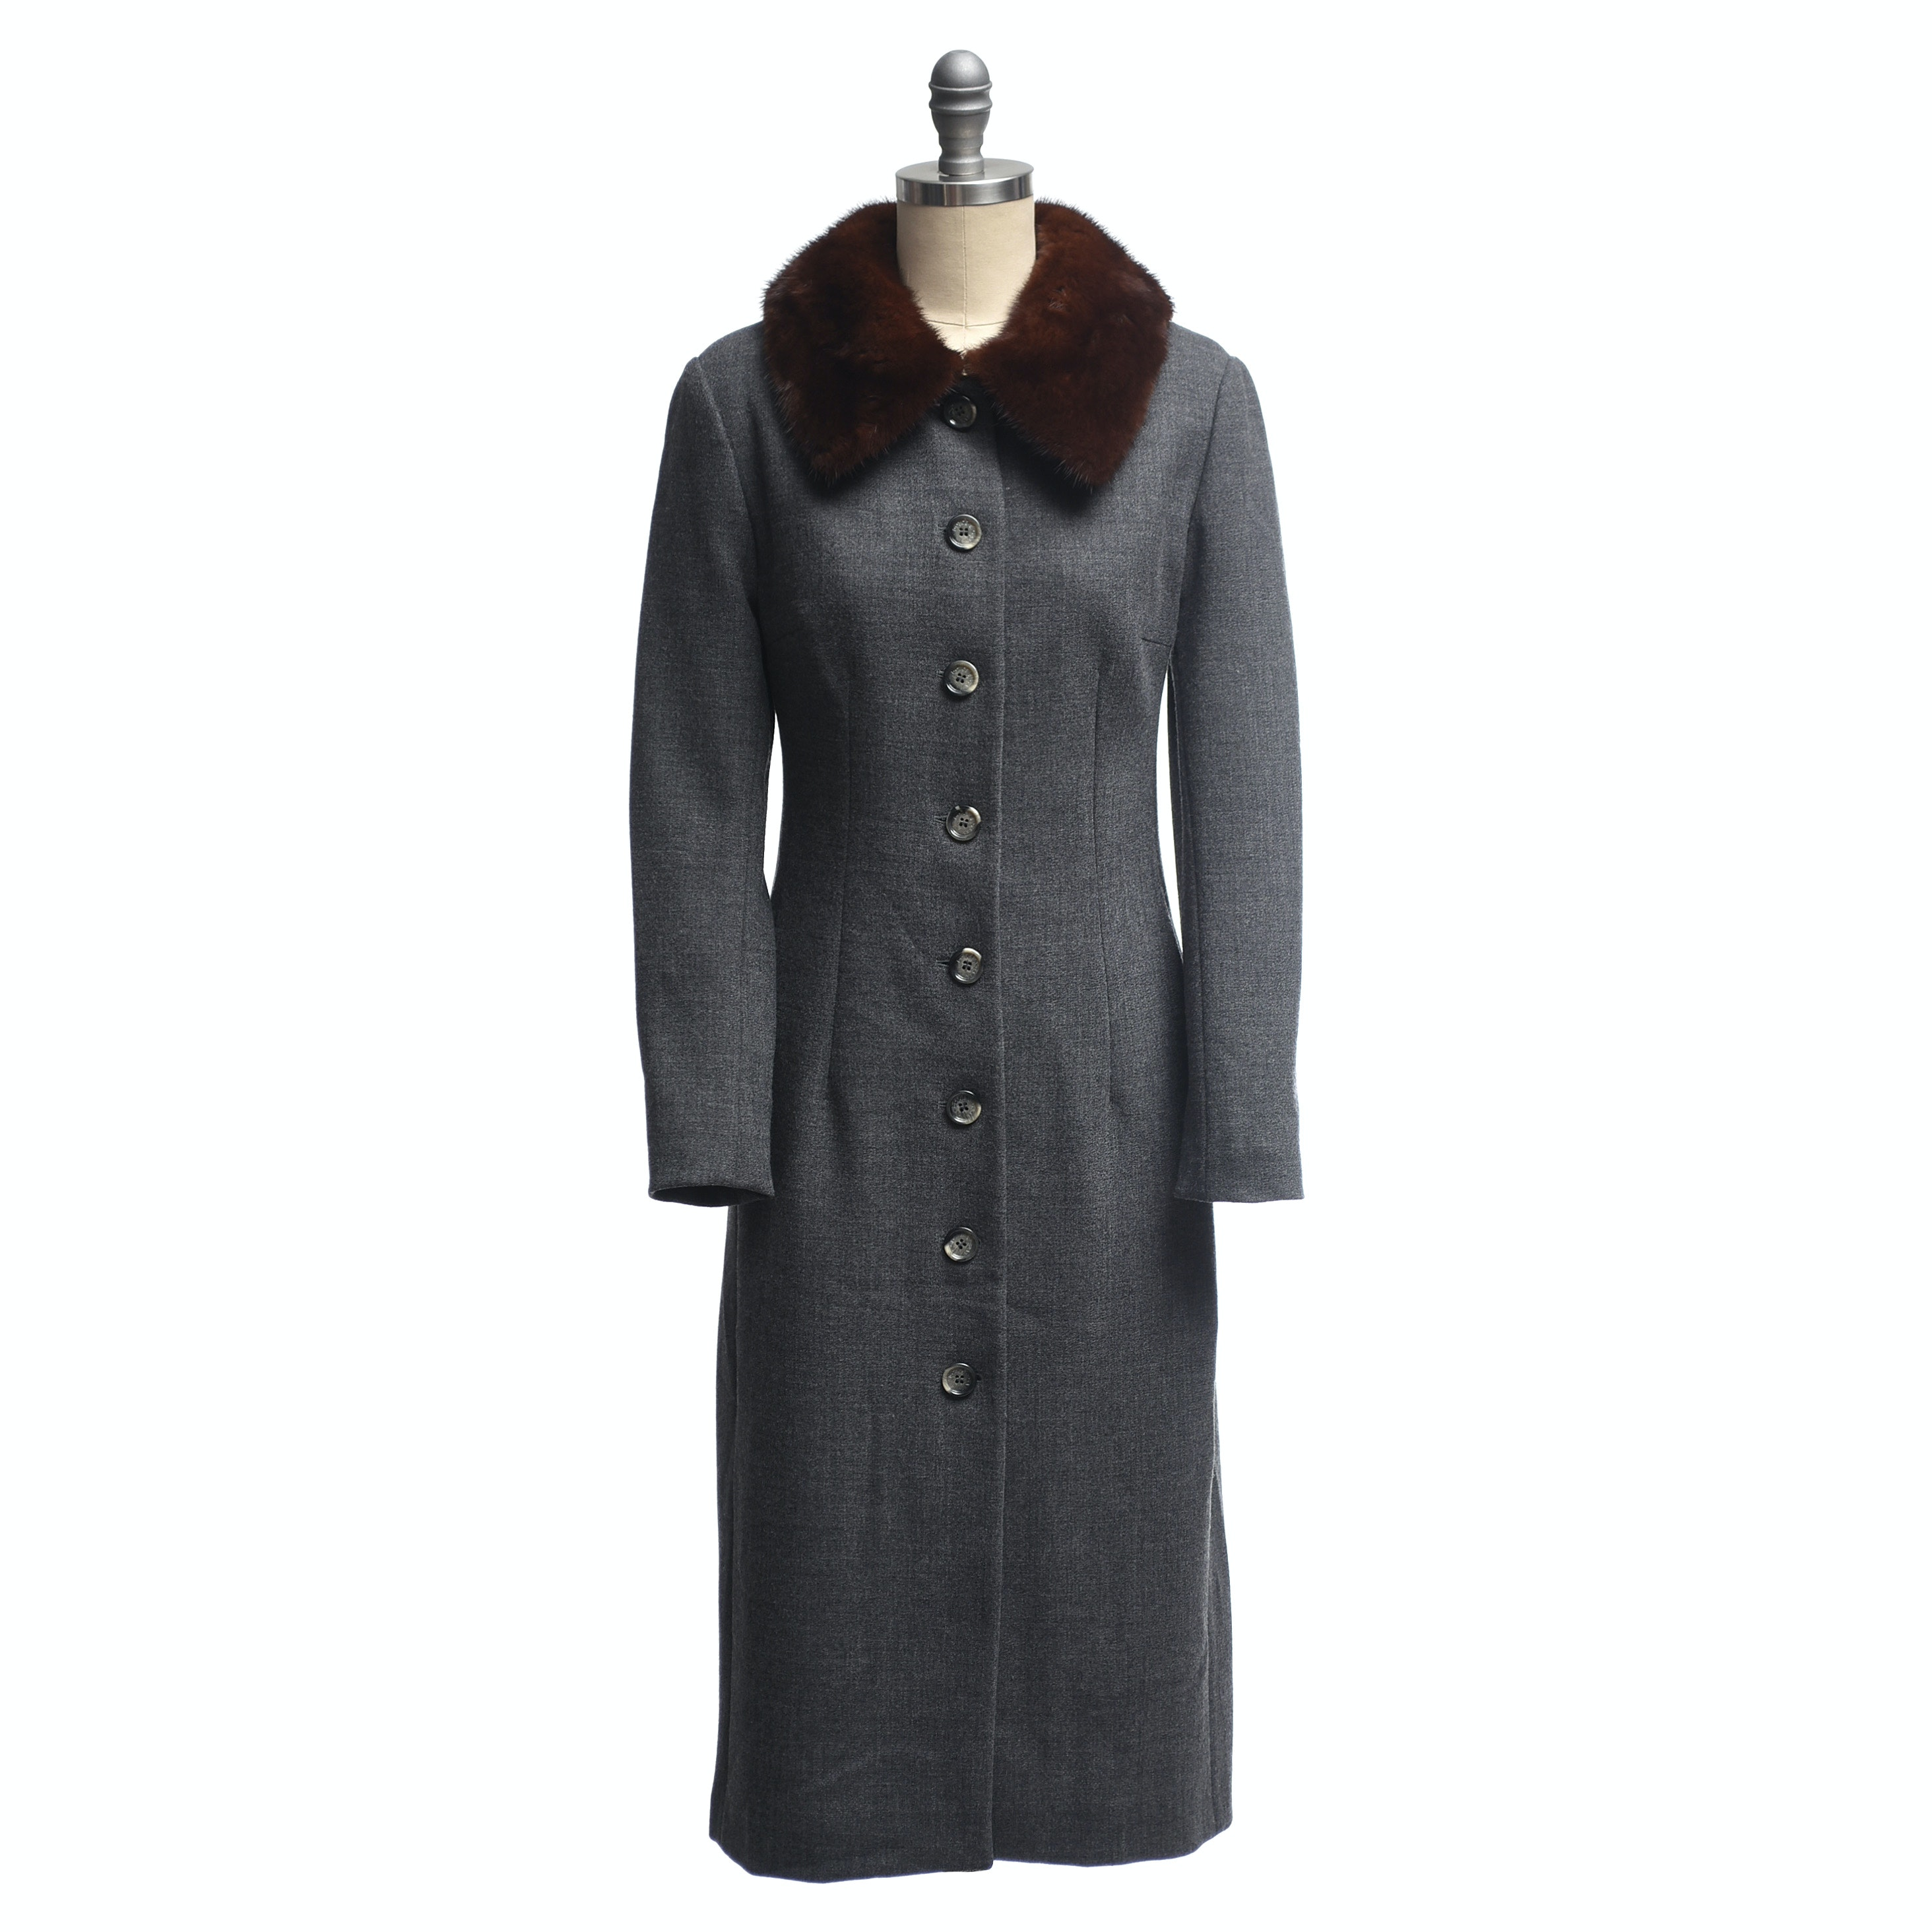 Dolce & Gabbana Gray Wool Overcoat with Mink Fur Collar